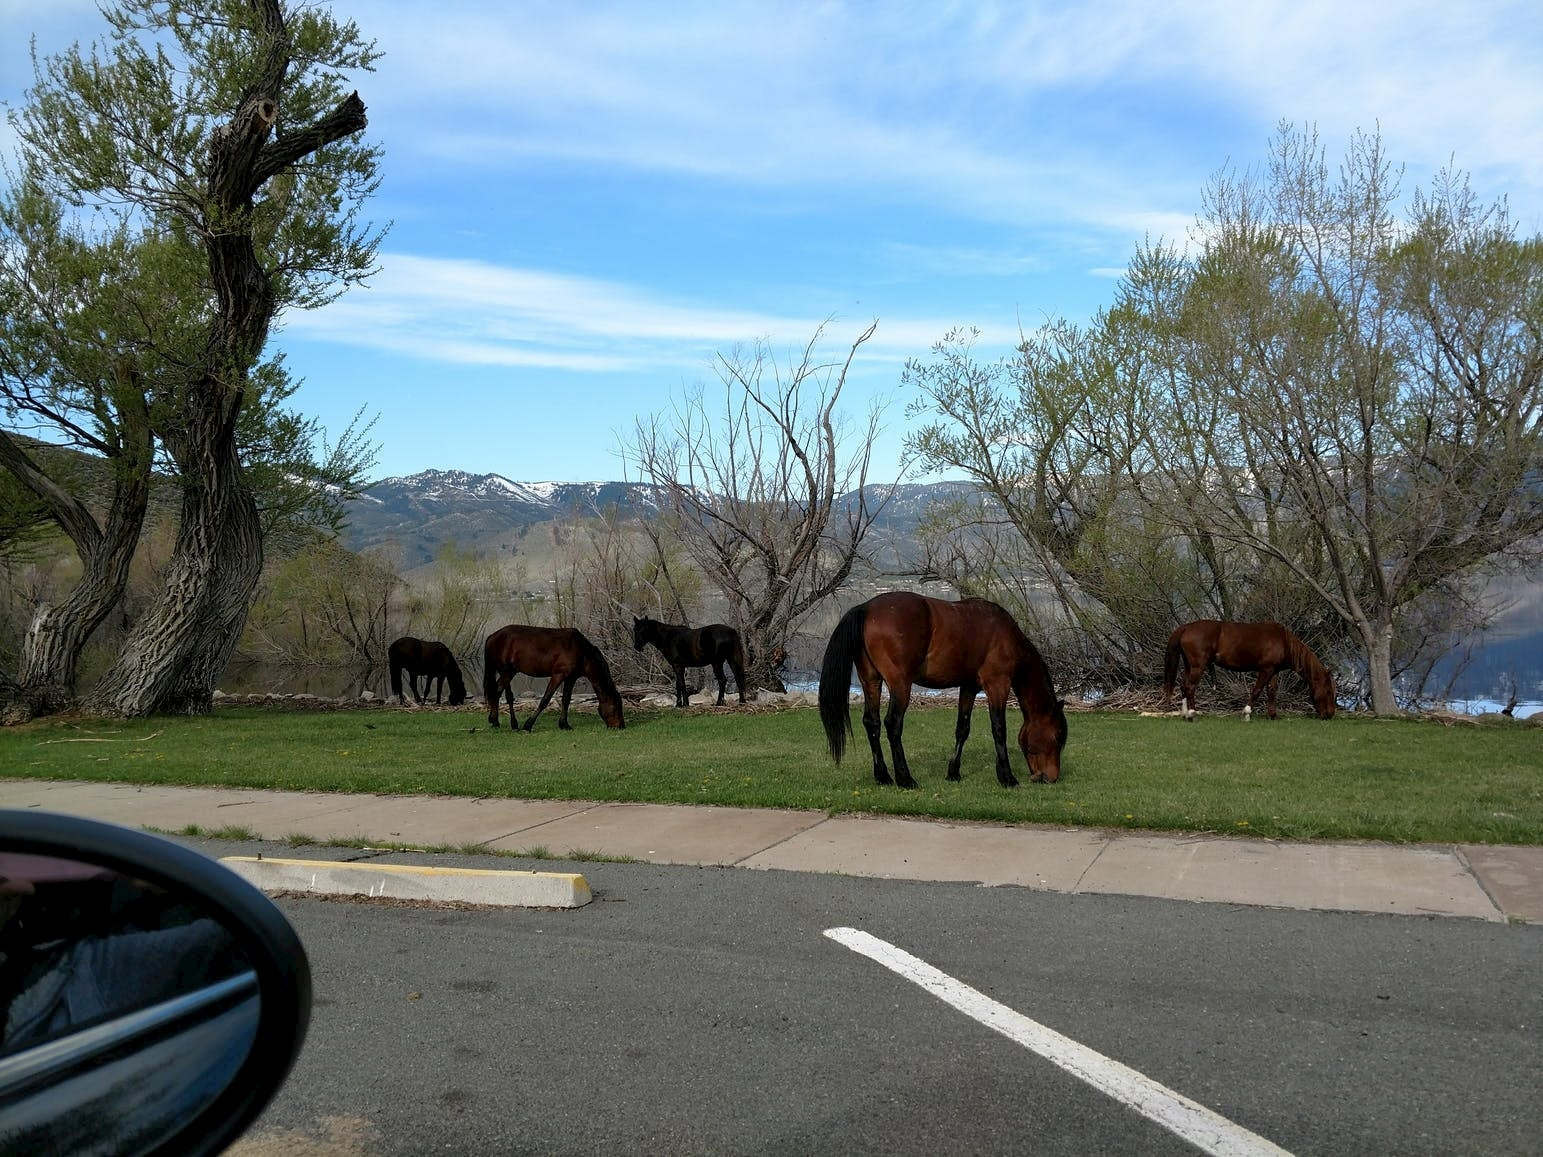 Wild mustangs grazing at Washoe Lake Campground.